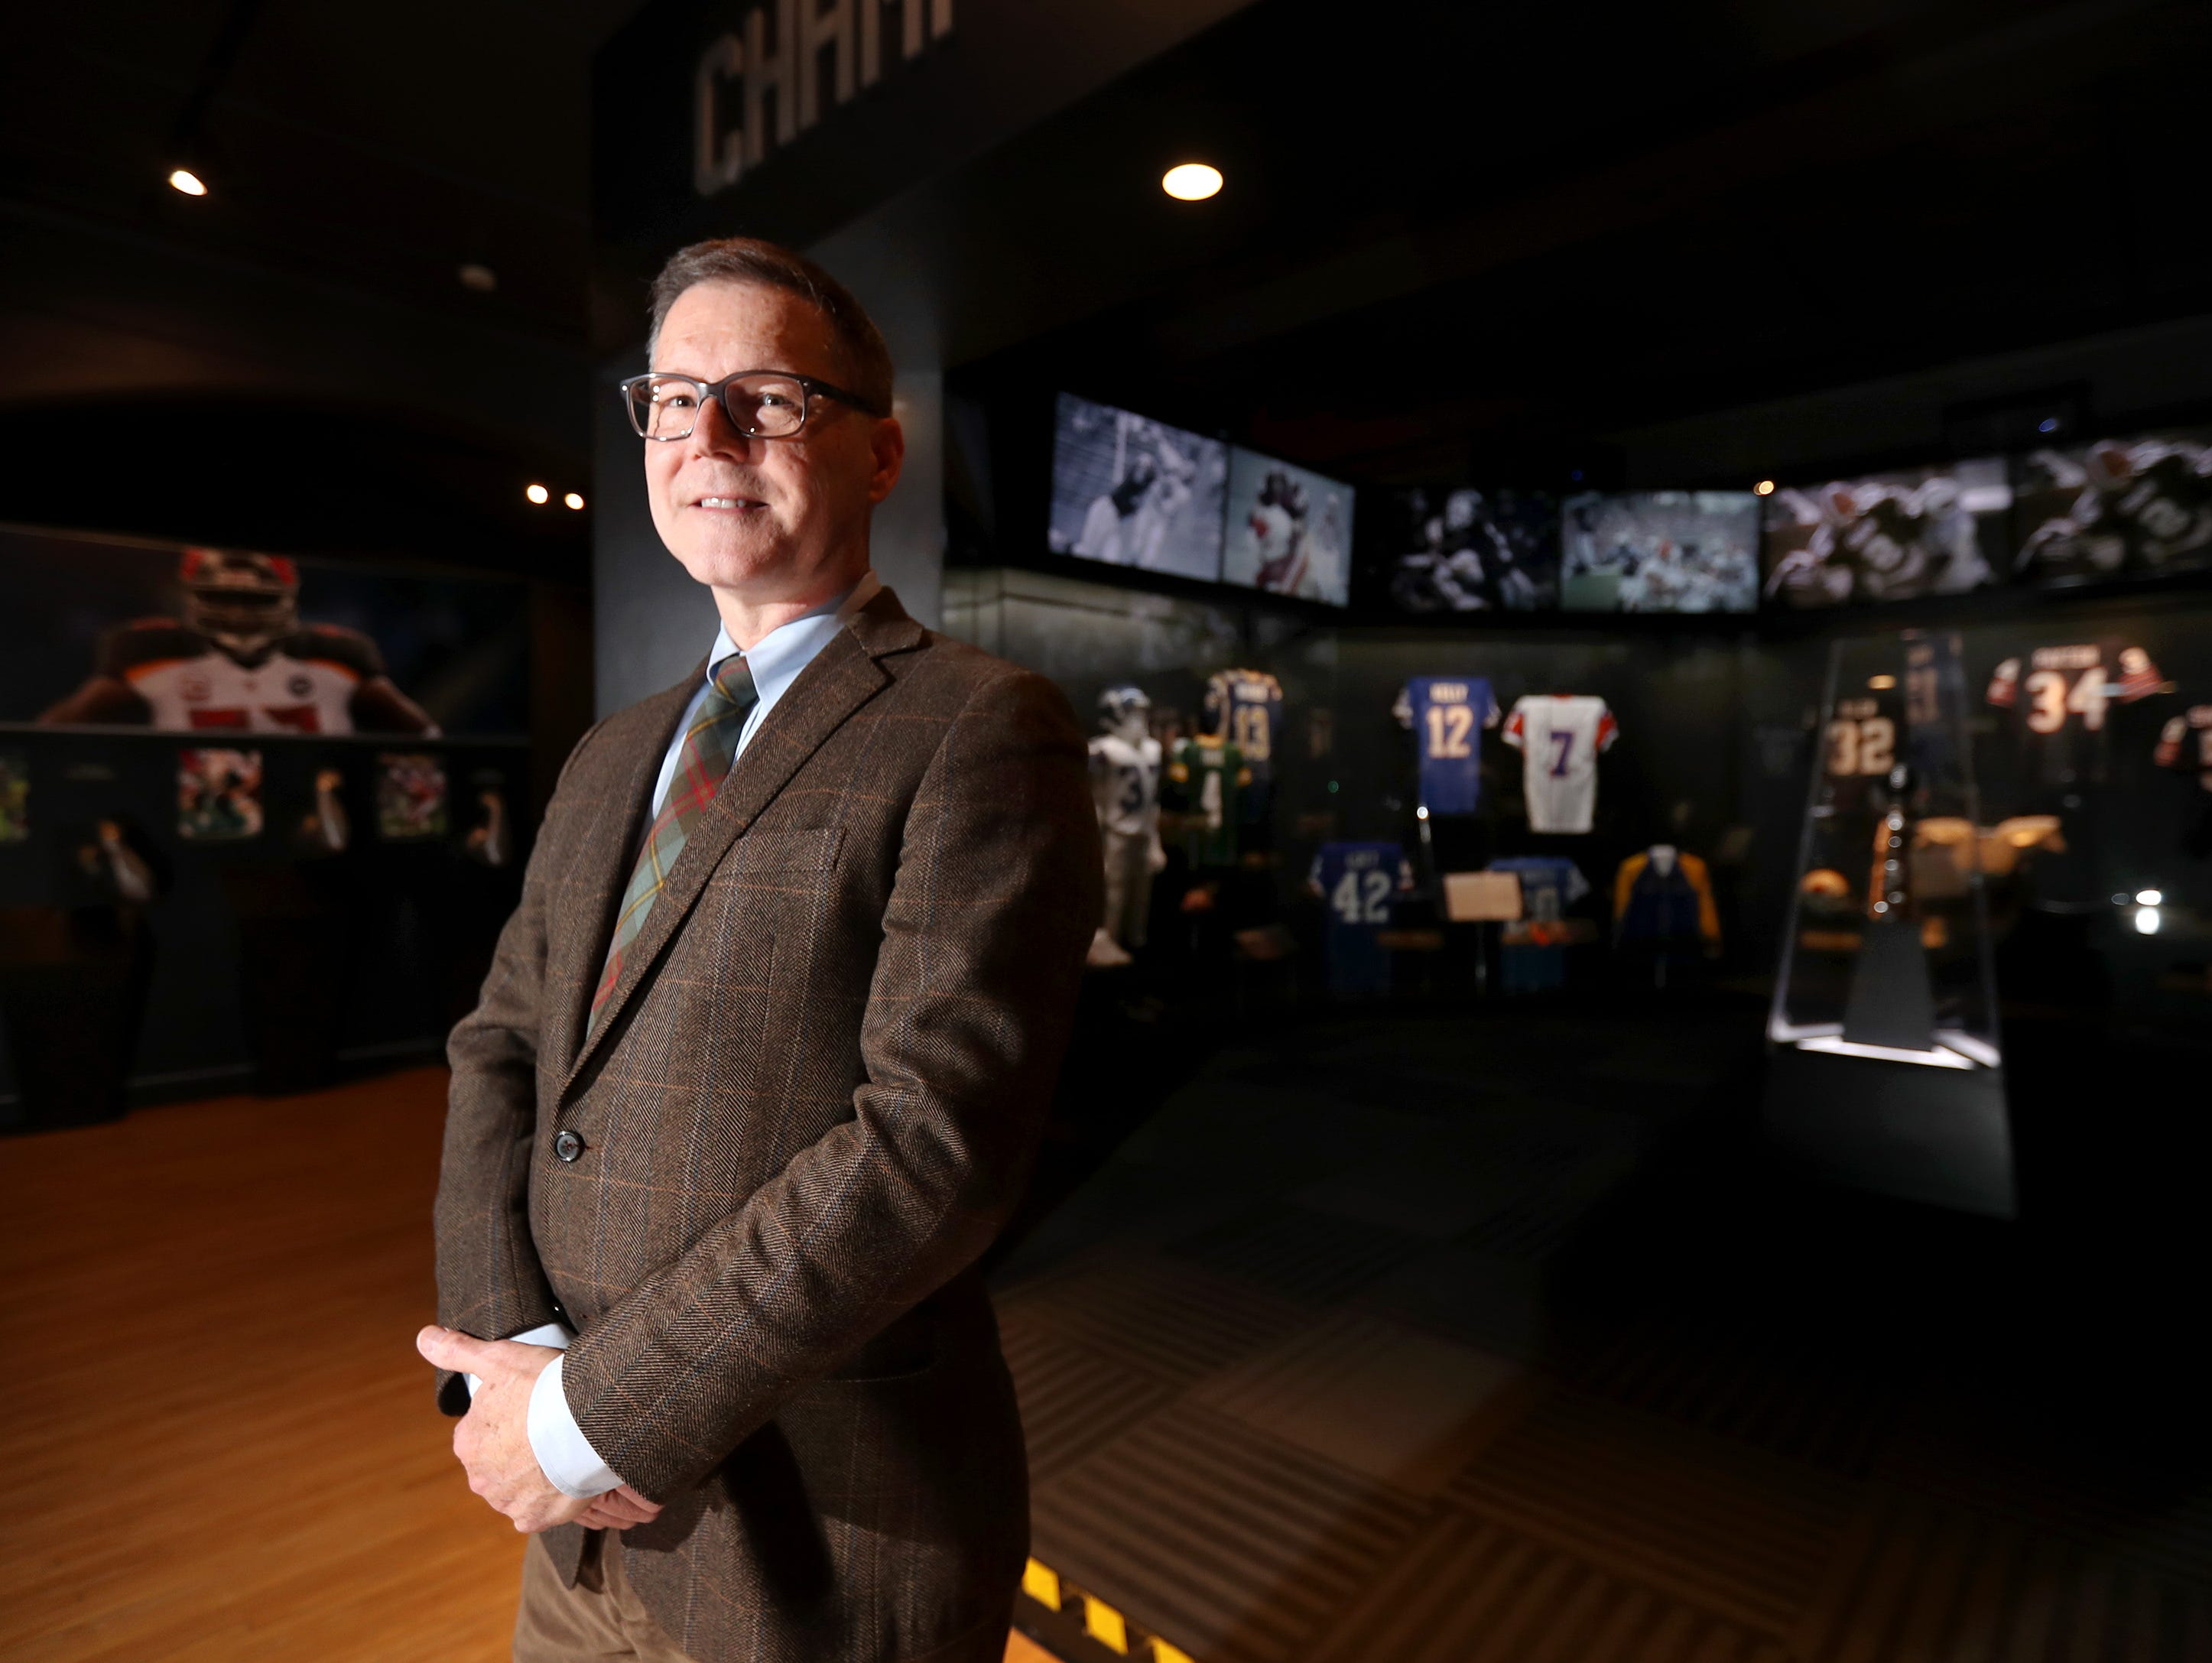 """Mat Carpenter, executive director for the History Museum at the Castle, stands for a portrait in front of the """"Gridiron Glory: The Best of the Pro Football Hall of Fame"""" exhibit Tuesday, Dec. 12, 2018, in Appleton, Wis.Danny Damiani/USA TODAY NETWORK-Wisconsin"""